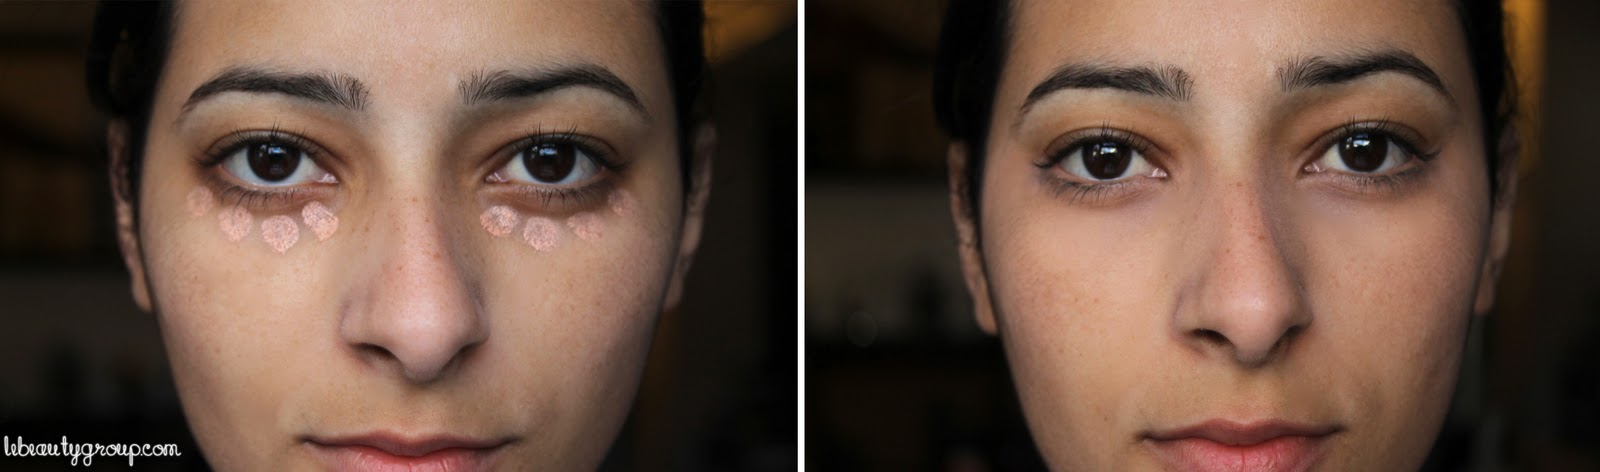 Review: Benefit Erase Paste Concealer (Before and After)